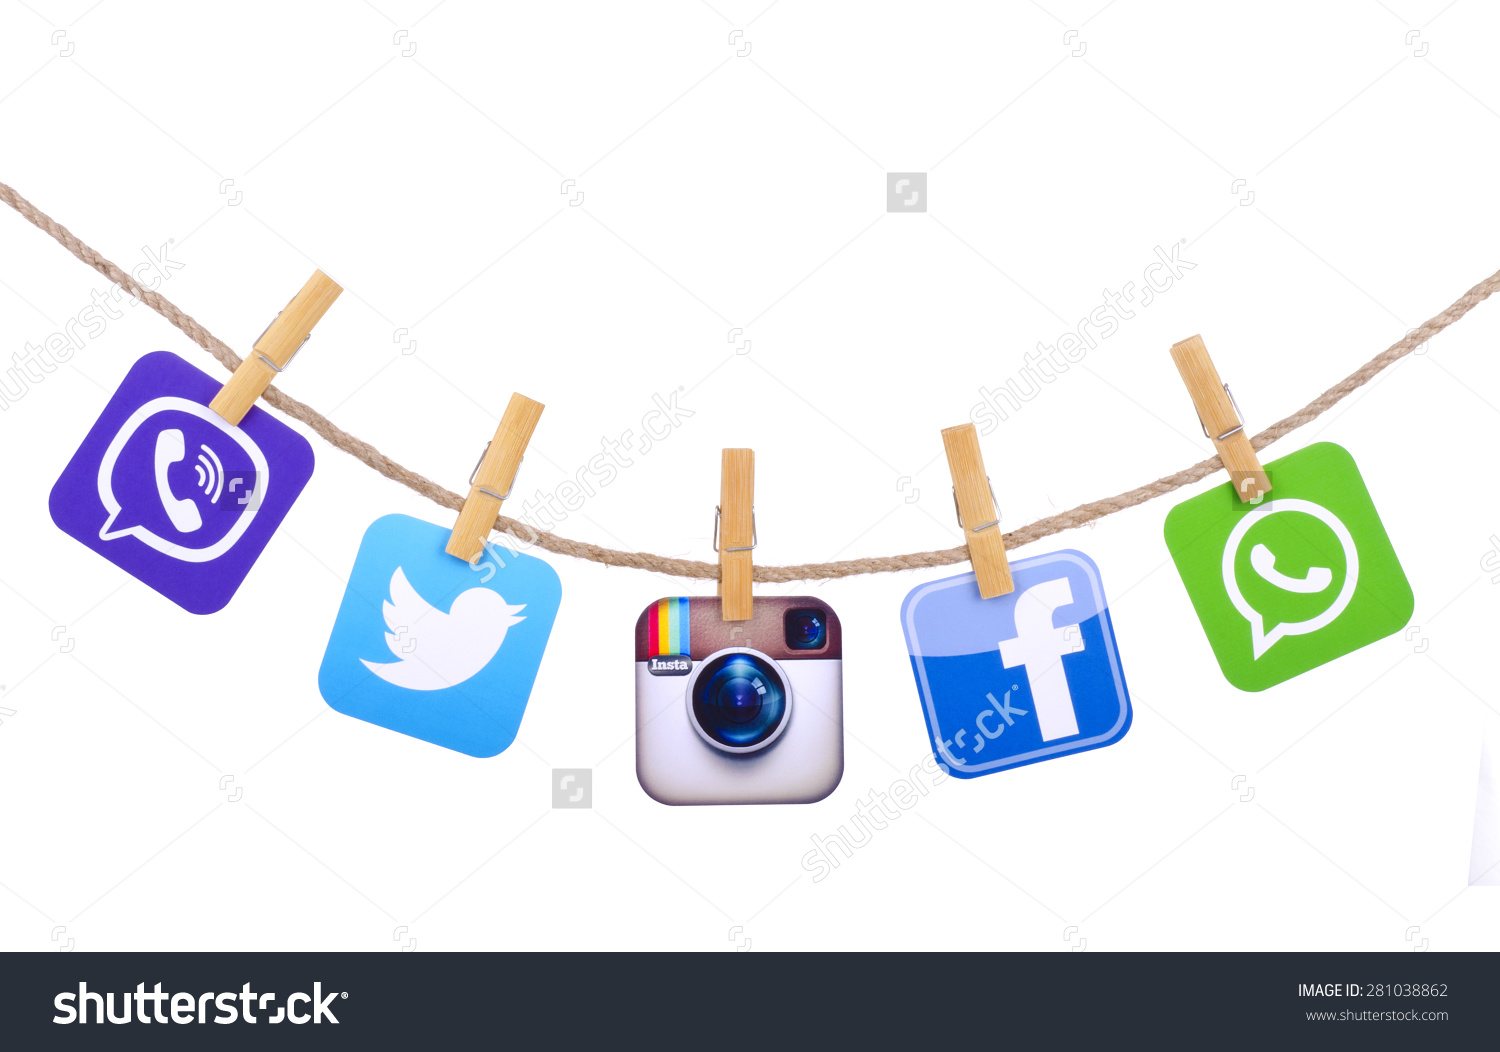 Facebook twitter instagram clipart svg free library Kiev Ukraine May 19 2015 Popular Stock Photo 281038862 - Shutterstock svg free library